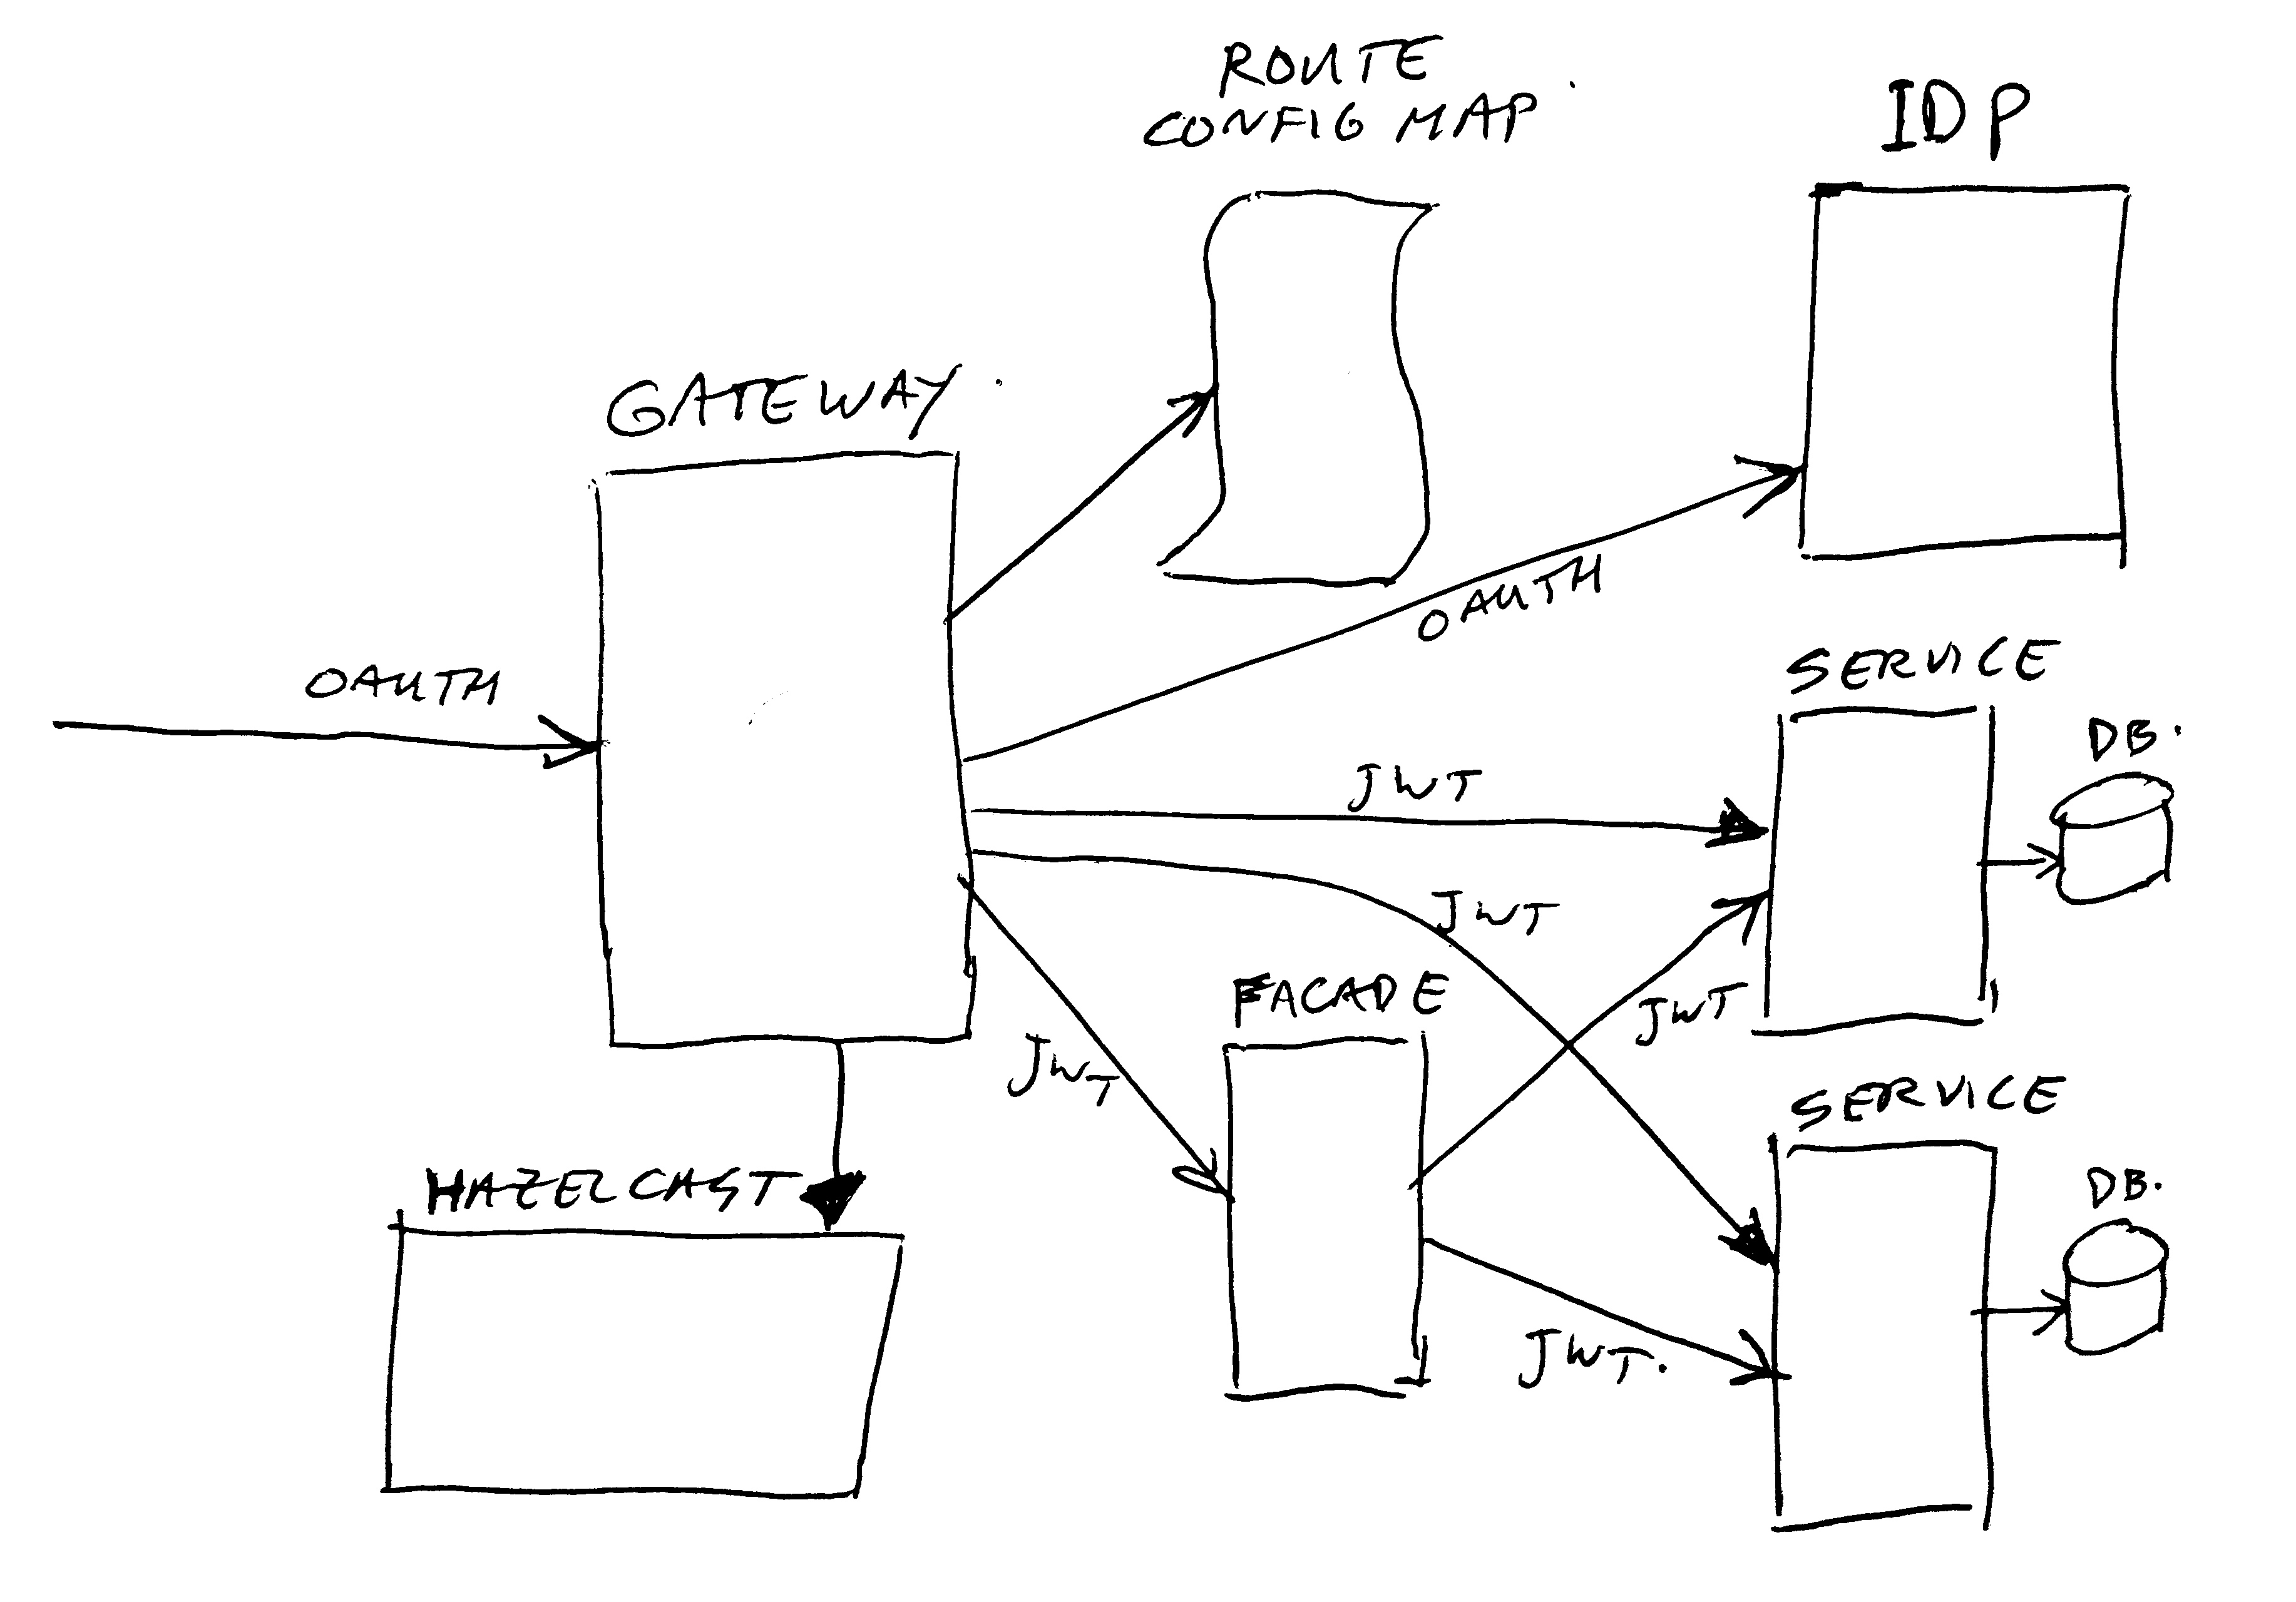 Micro-services Architecture with Oauth2 and JWT – Part 2 – Gateway